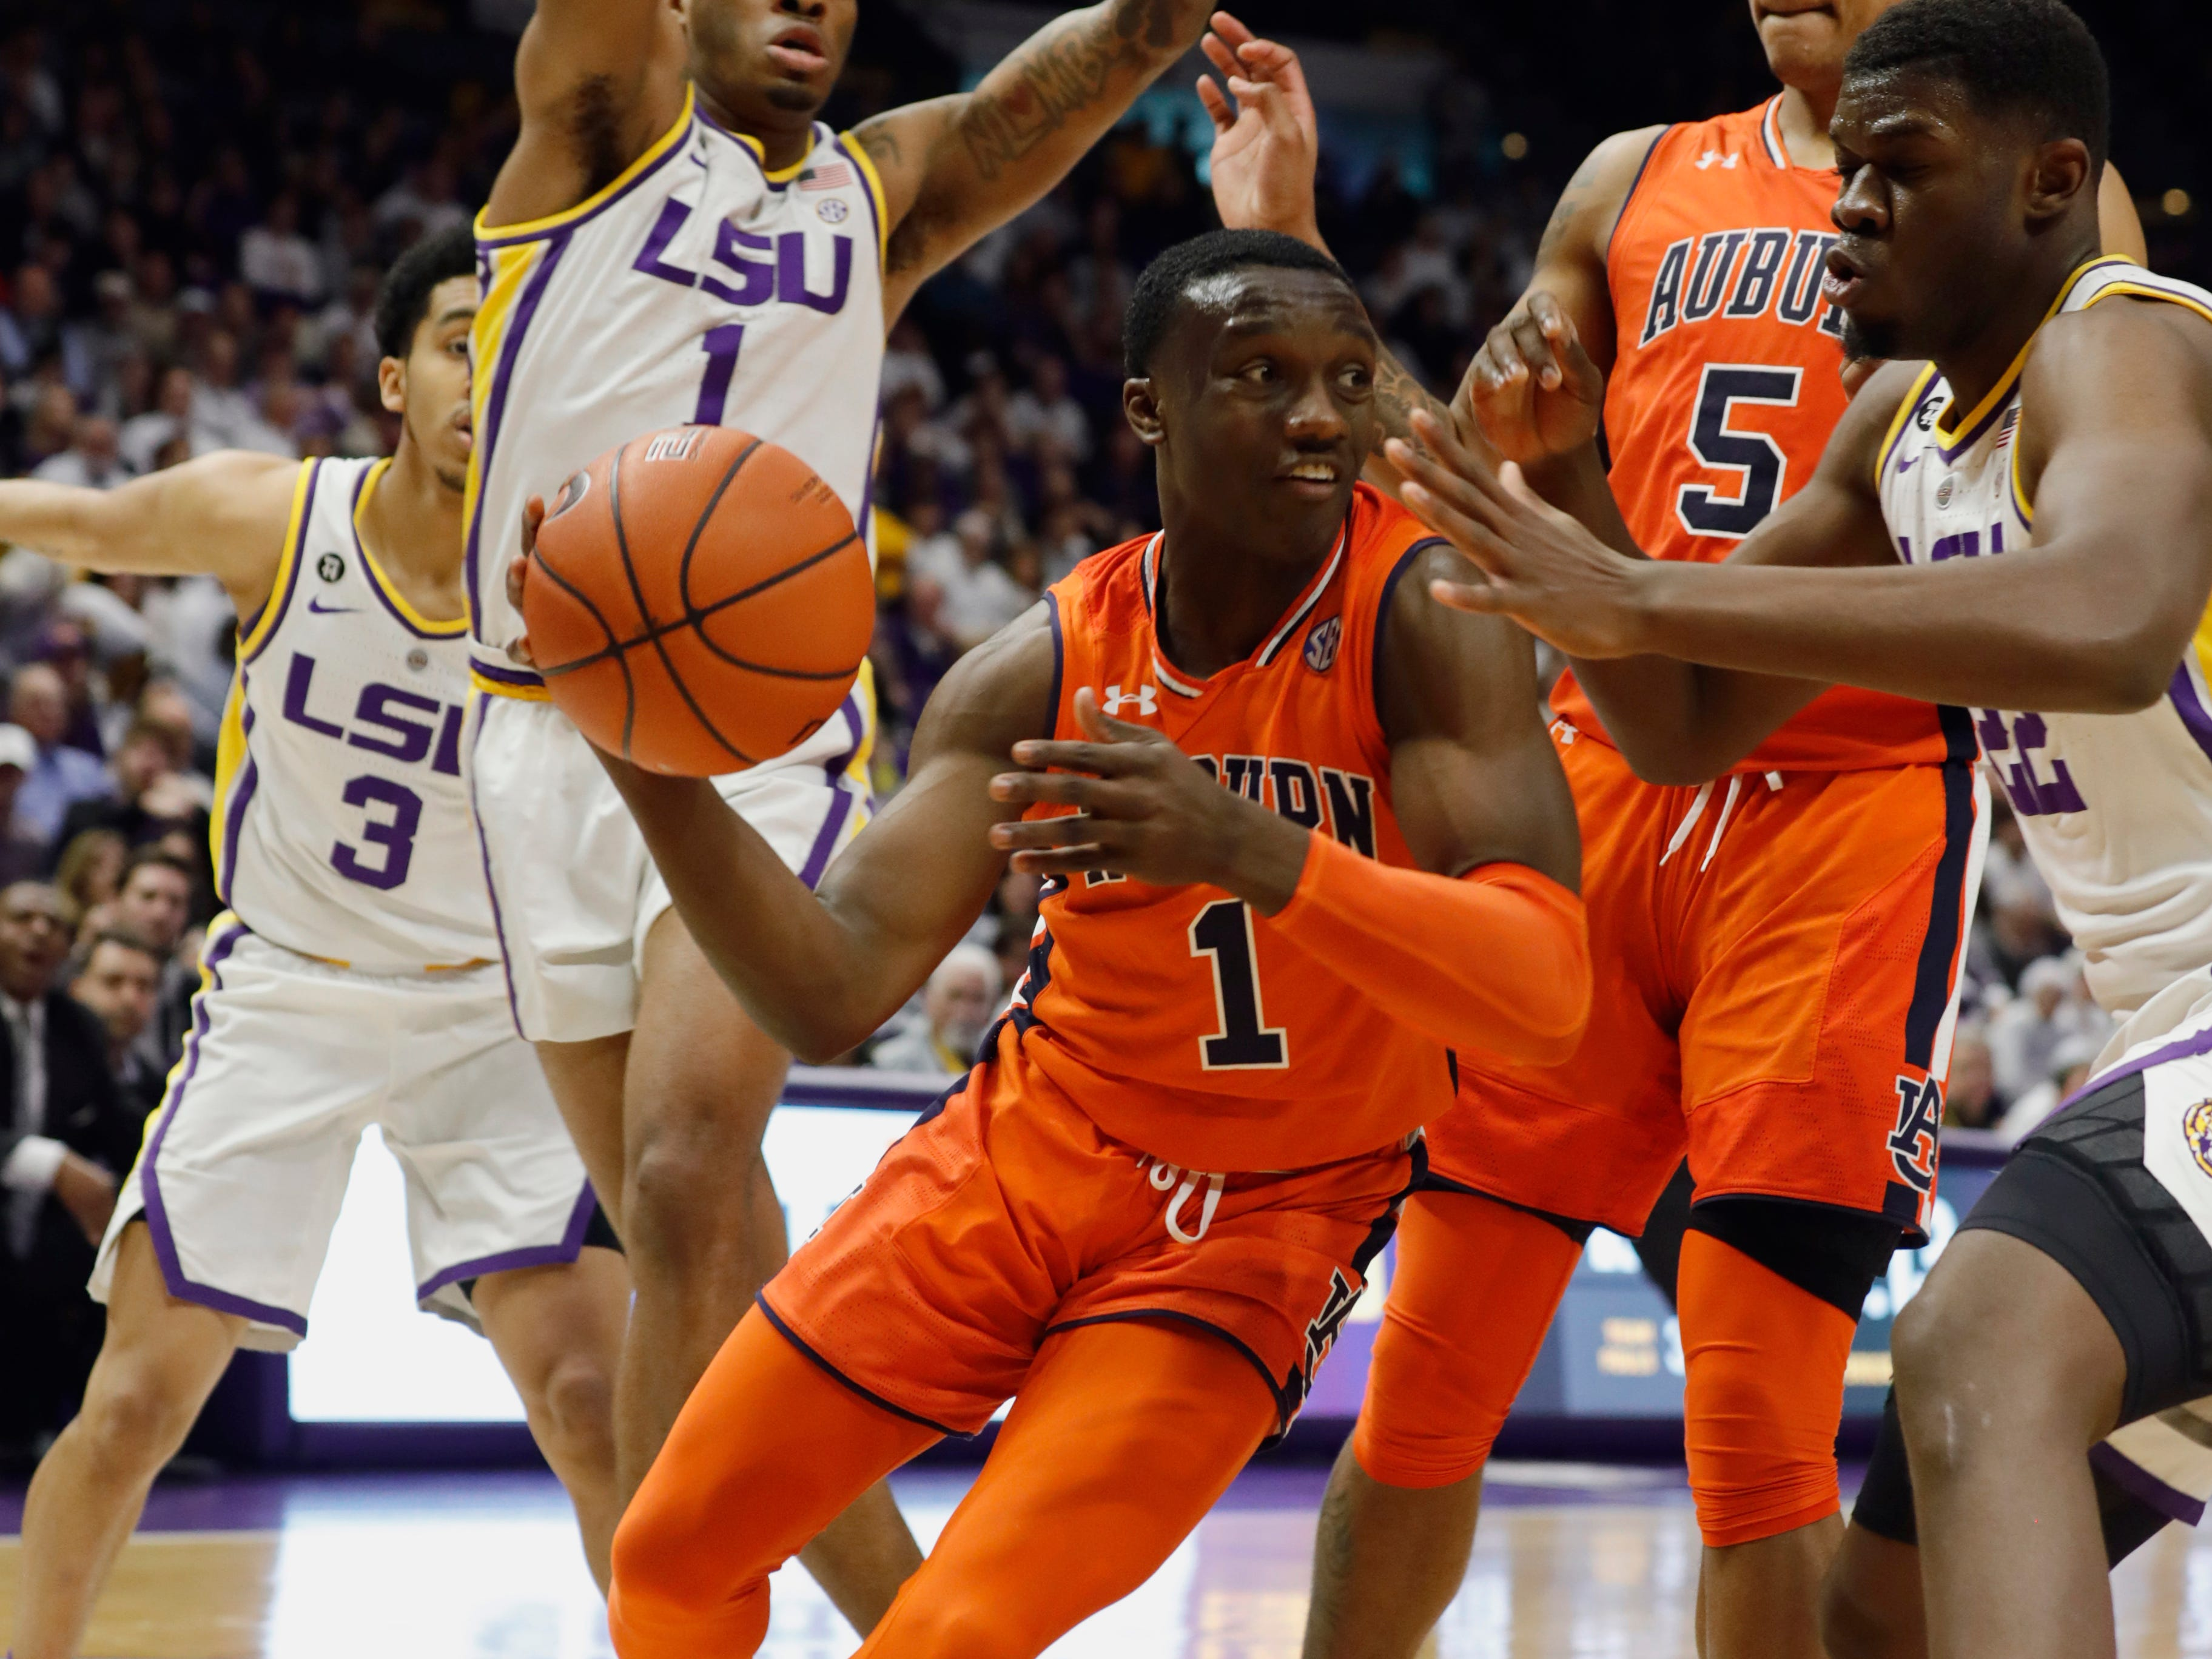 Feb 9, 2019; Baton Rouge, LA, USA; Auburn Tigers guard Jared Harper (1) dribbles against LSU Tigers guard Ja'vonte Smart (1) in the first half at Maravich Assembly Center. Mandatory Credit: Stephen Lew-USA TODAY Sports